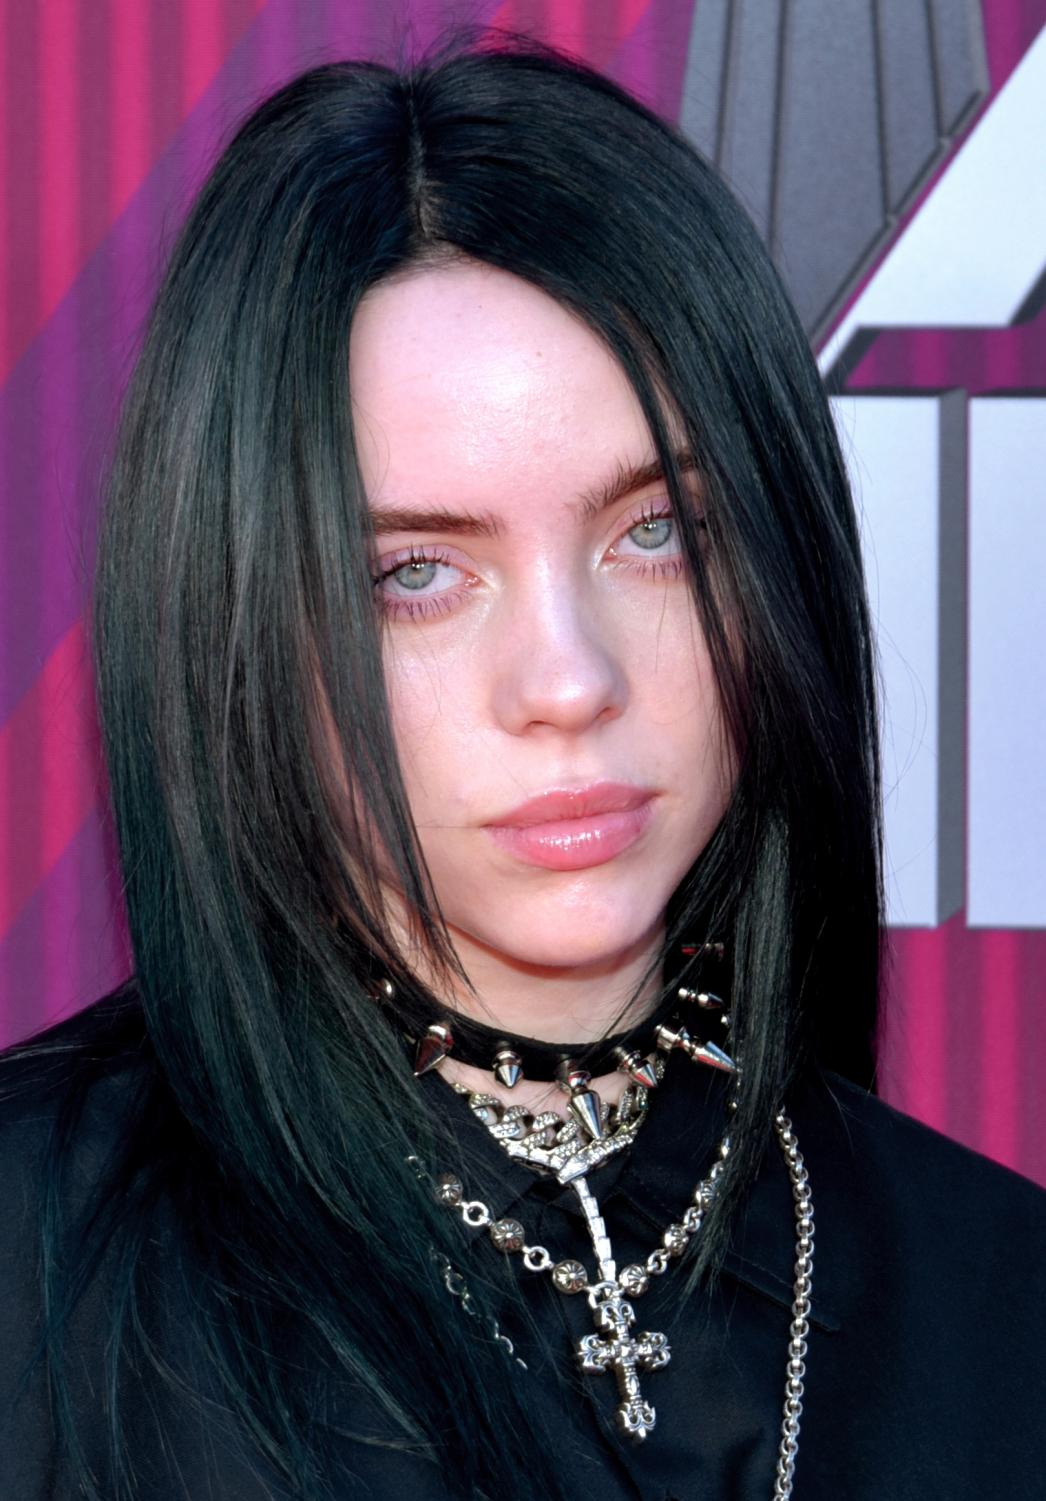 Billie Eilish's Dominance at The Grammys: Were they Deserved?